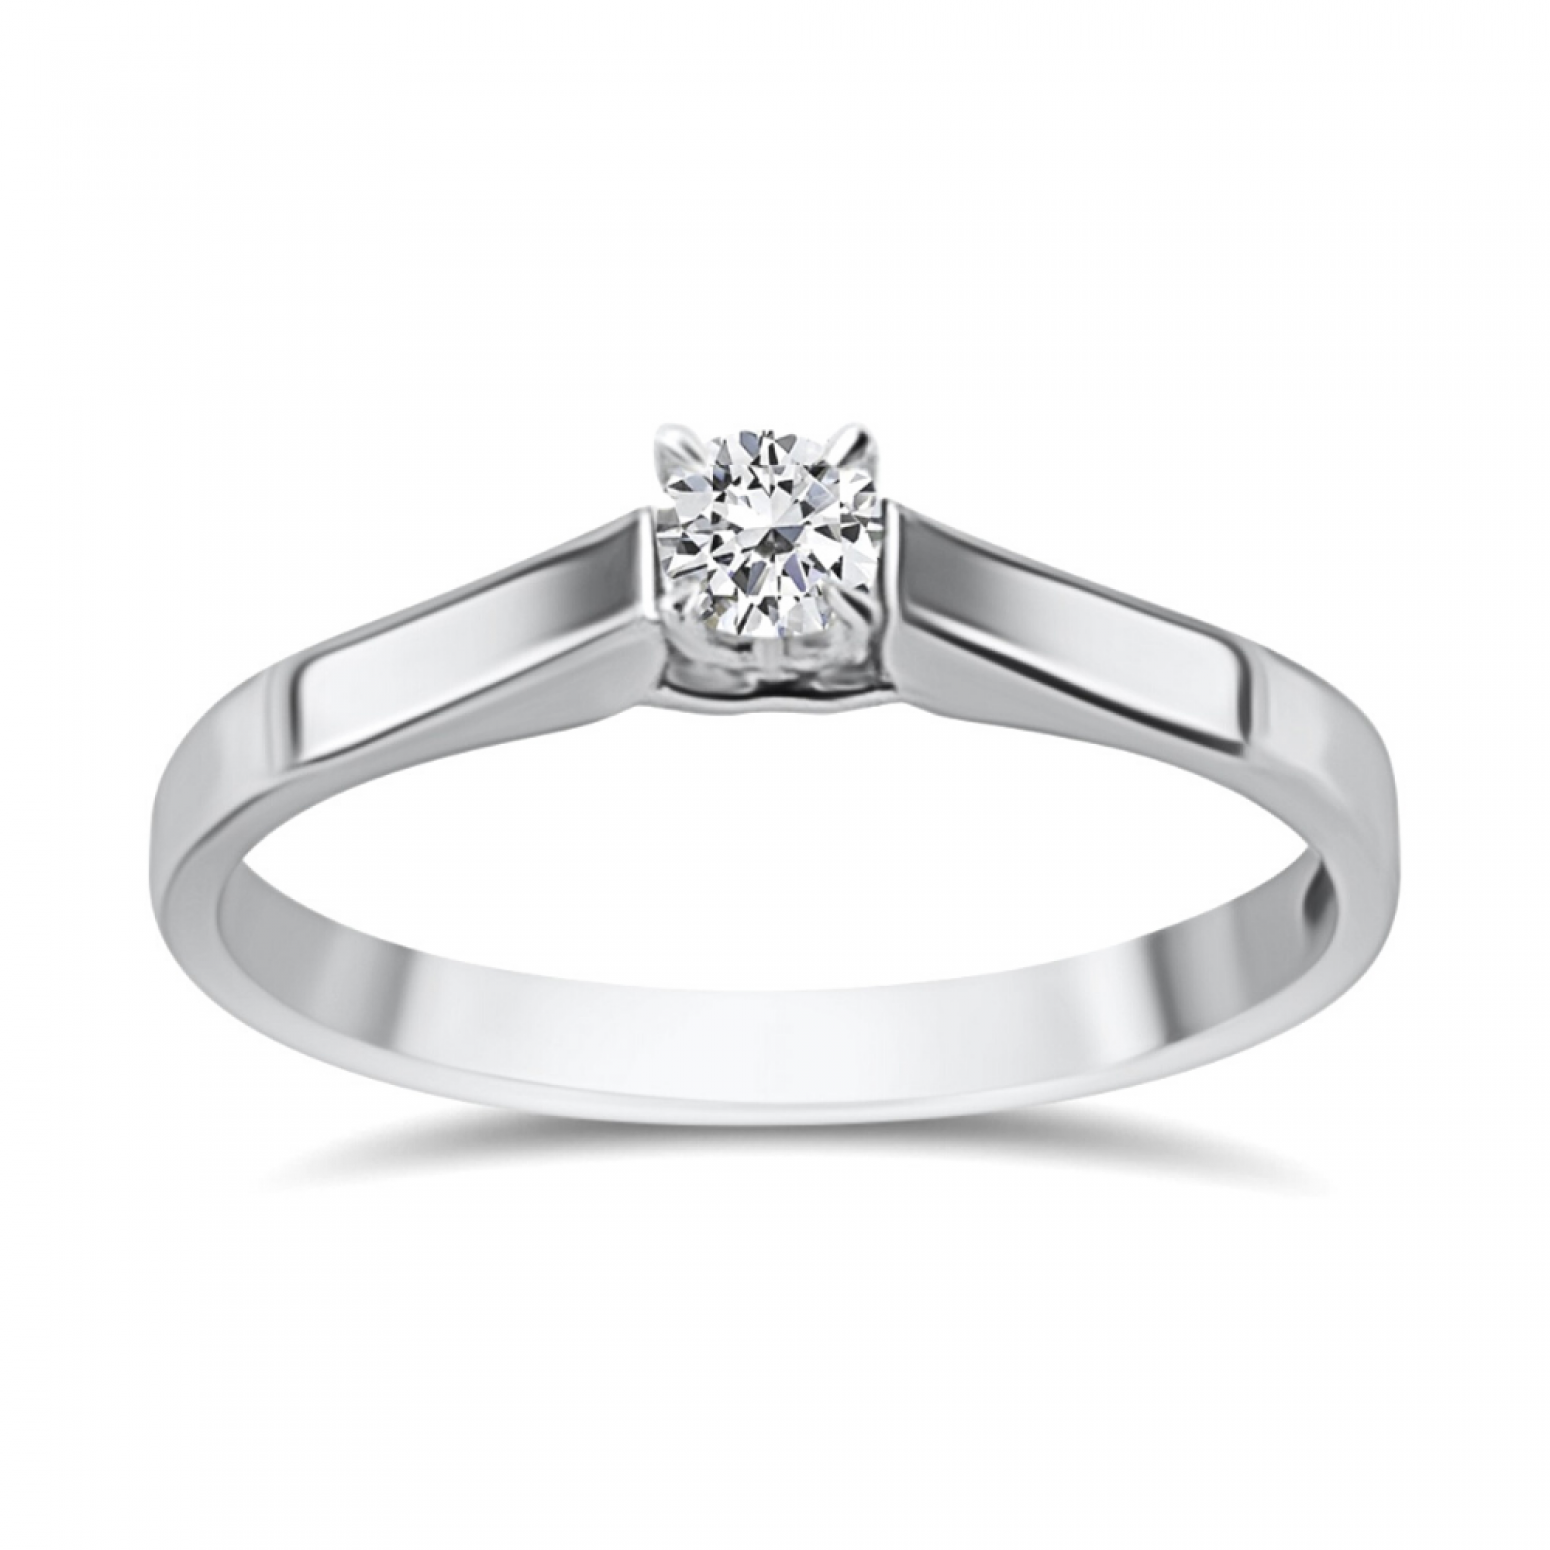 Solitaire ring 18K white gold with diamond 0.08ct, VS1, G from IGL da3794 ENGAGEMENT RINGS Κοσμηματα - chrilia.gr